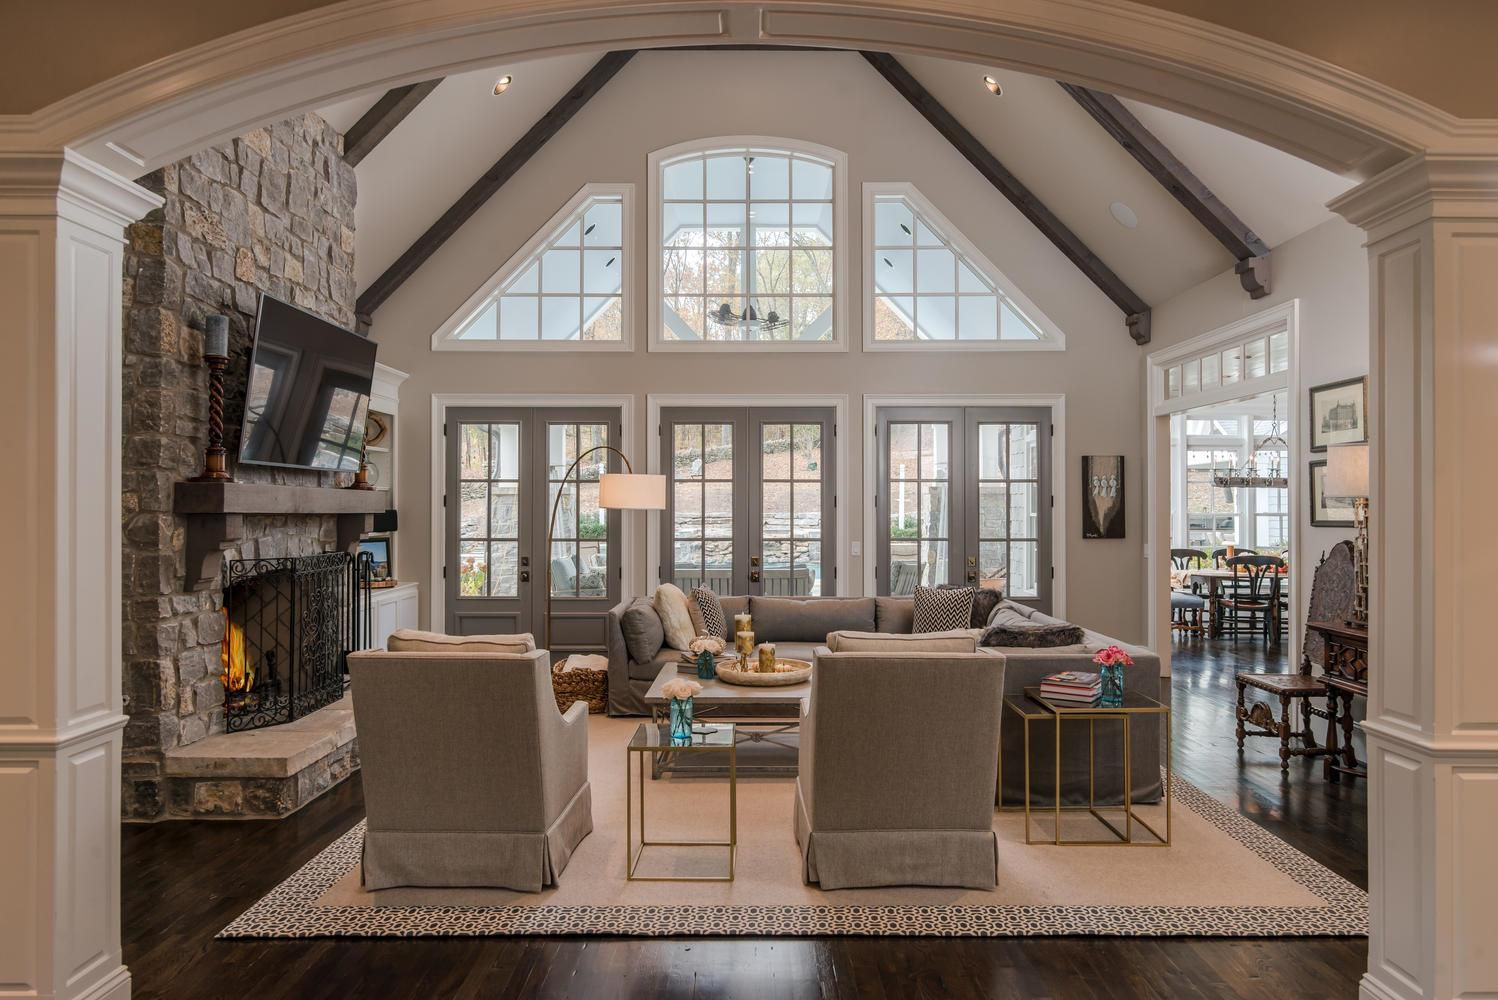 Great Room Vaulted Ceiling With Beams And Windows Vaulted Living